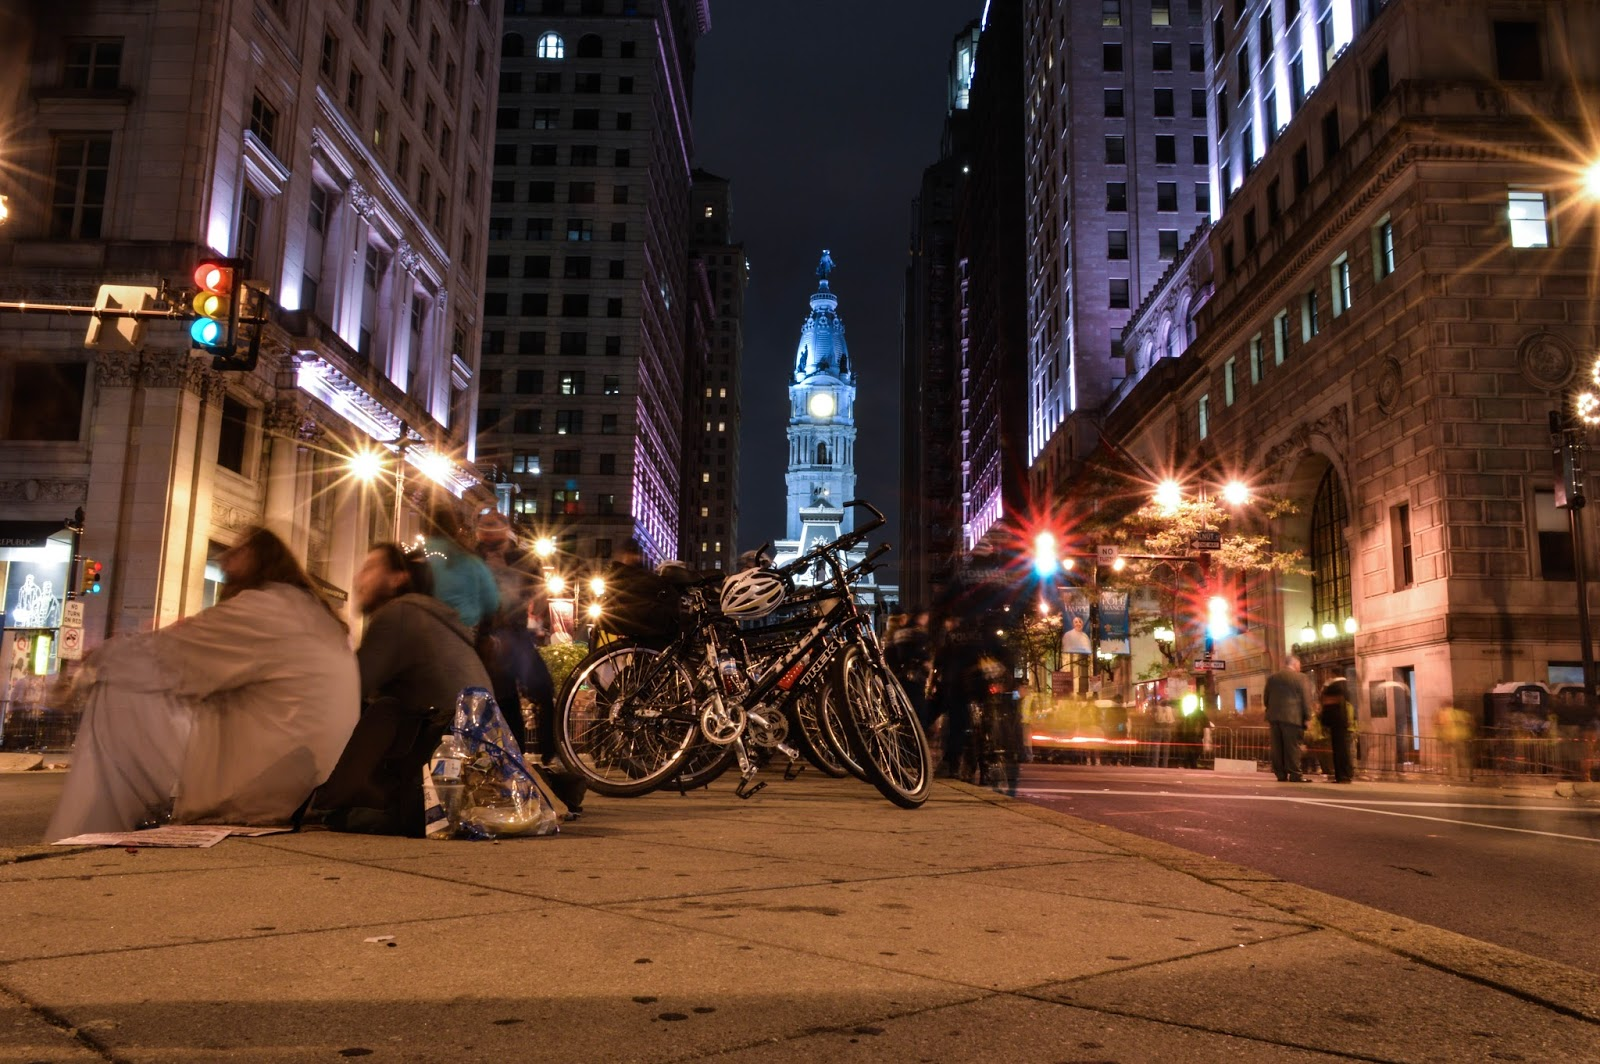 City Hall [PopeInPhilly]